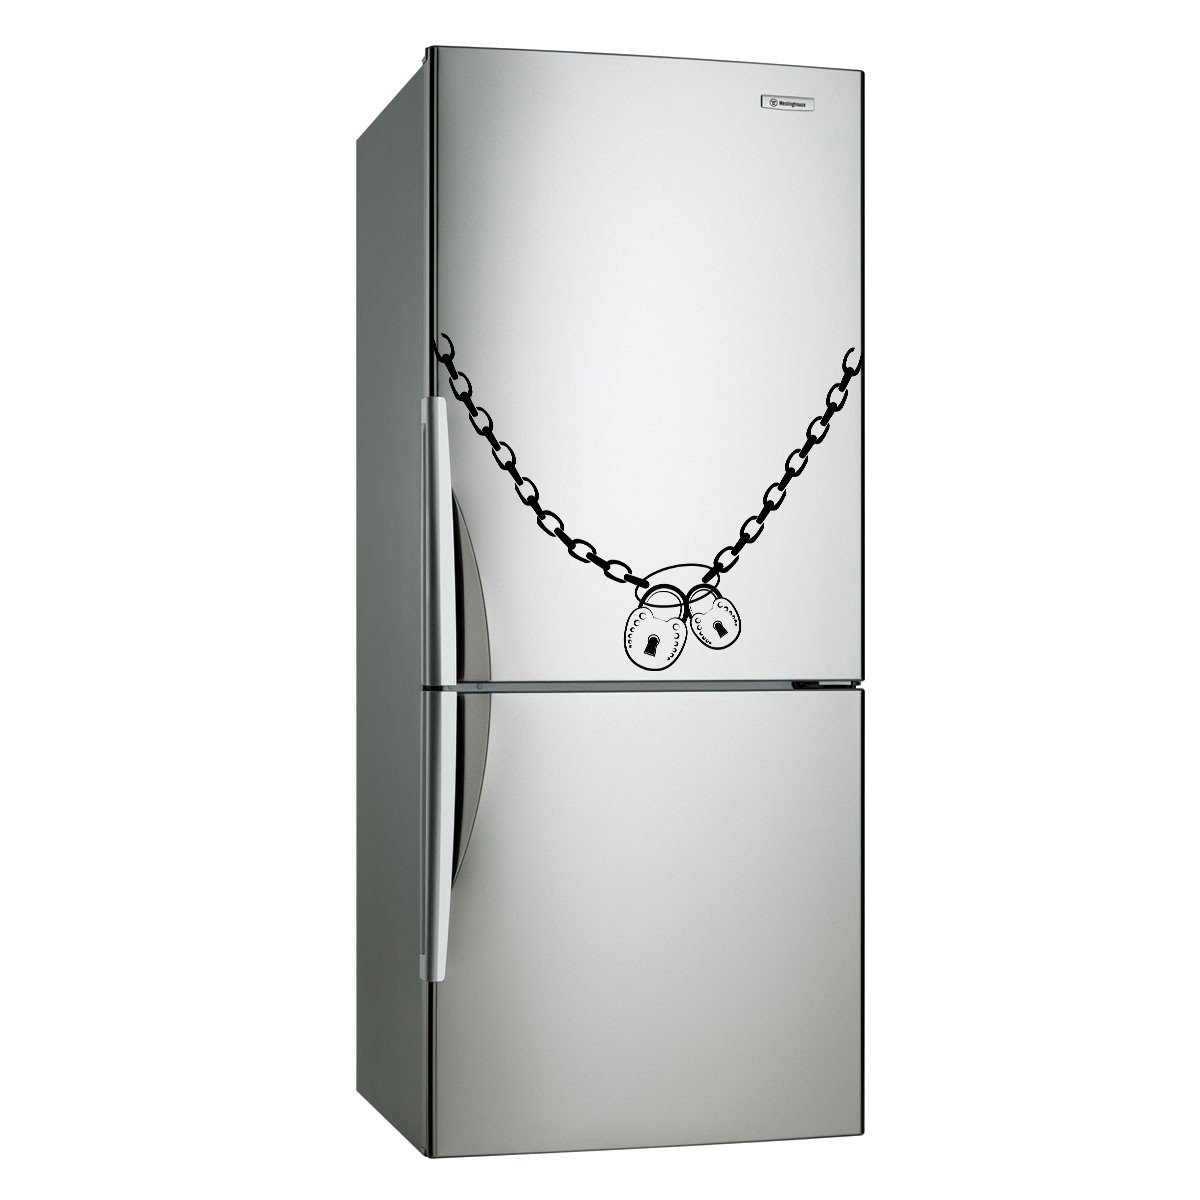 (16''x12'') Vinyl Fridge Decal Lock & Chain Refrigerator Art Decor Home Sticker + Free Decal Gift!